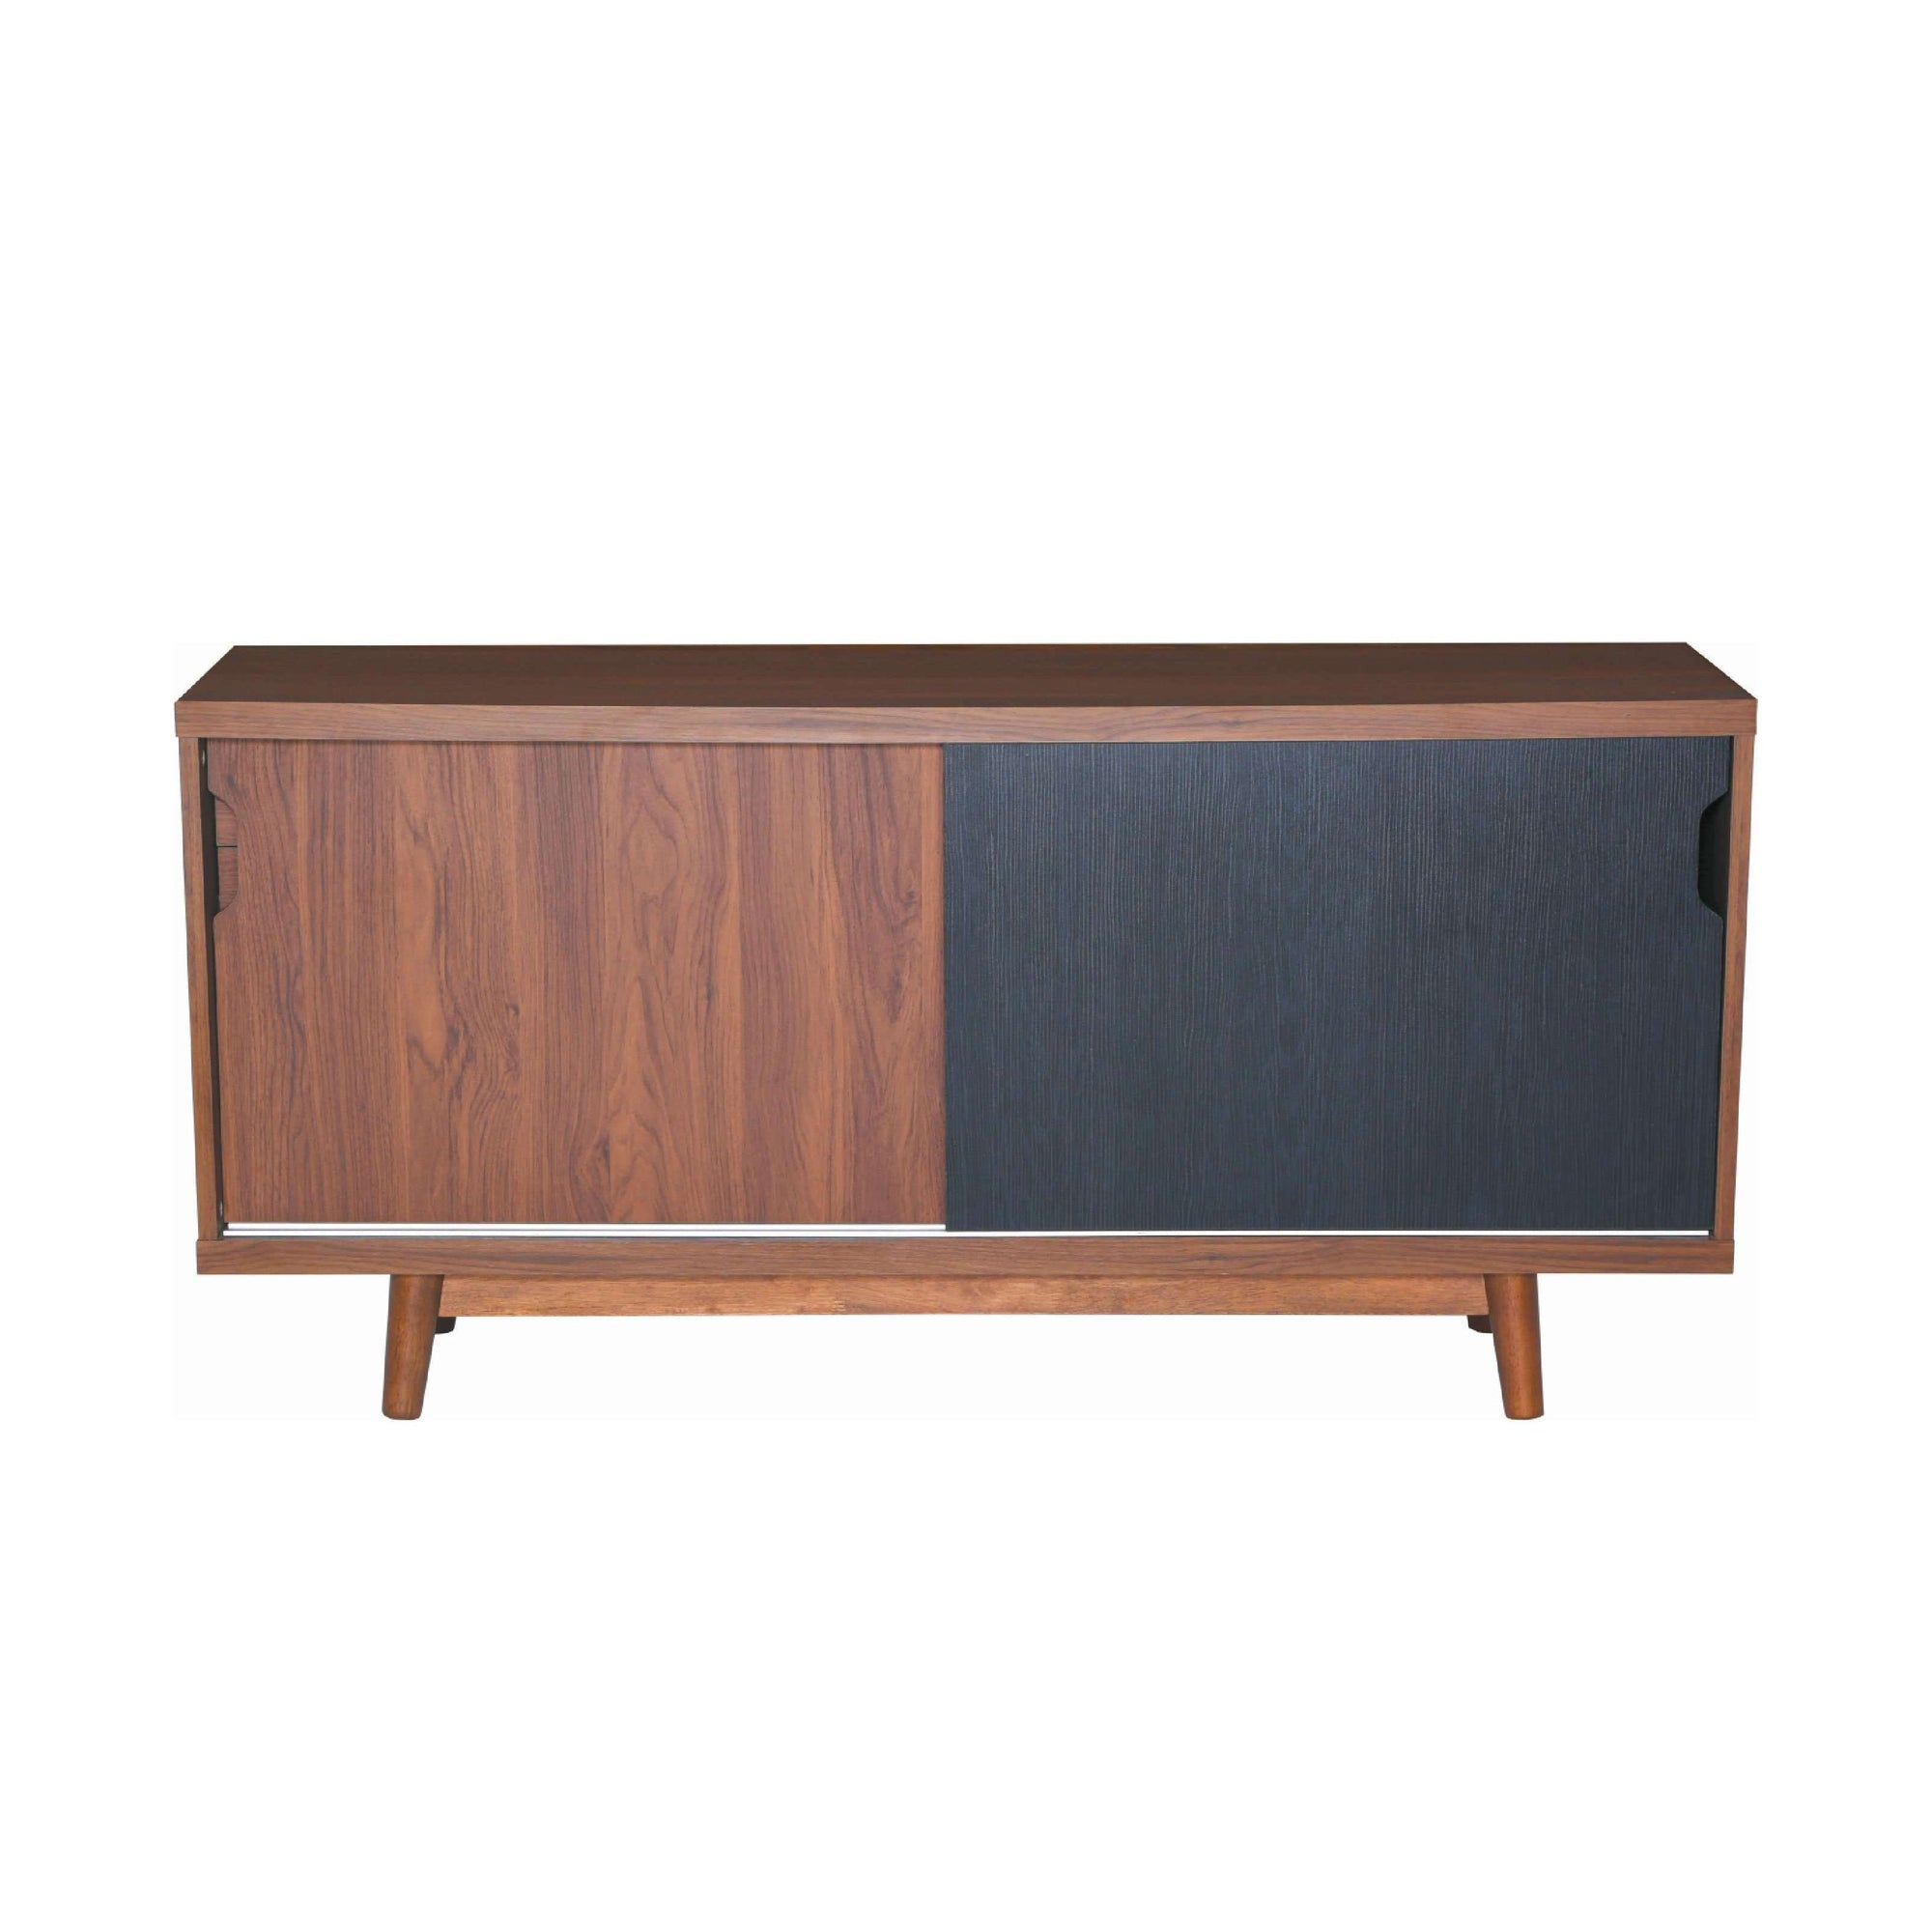 ANAS Sideboard On Cocoa Colour Body, Walnut Laminate And Black Laminate Door